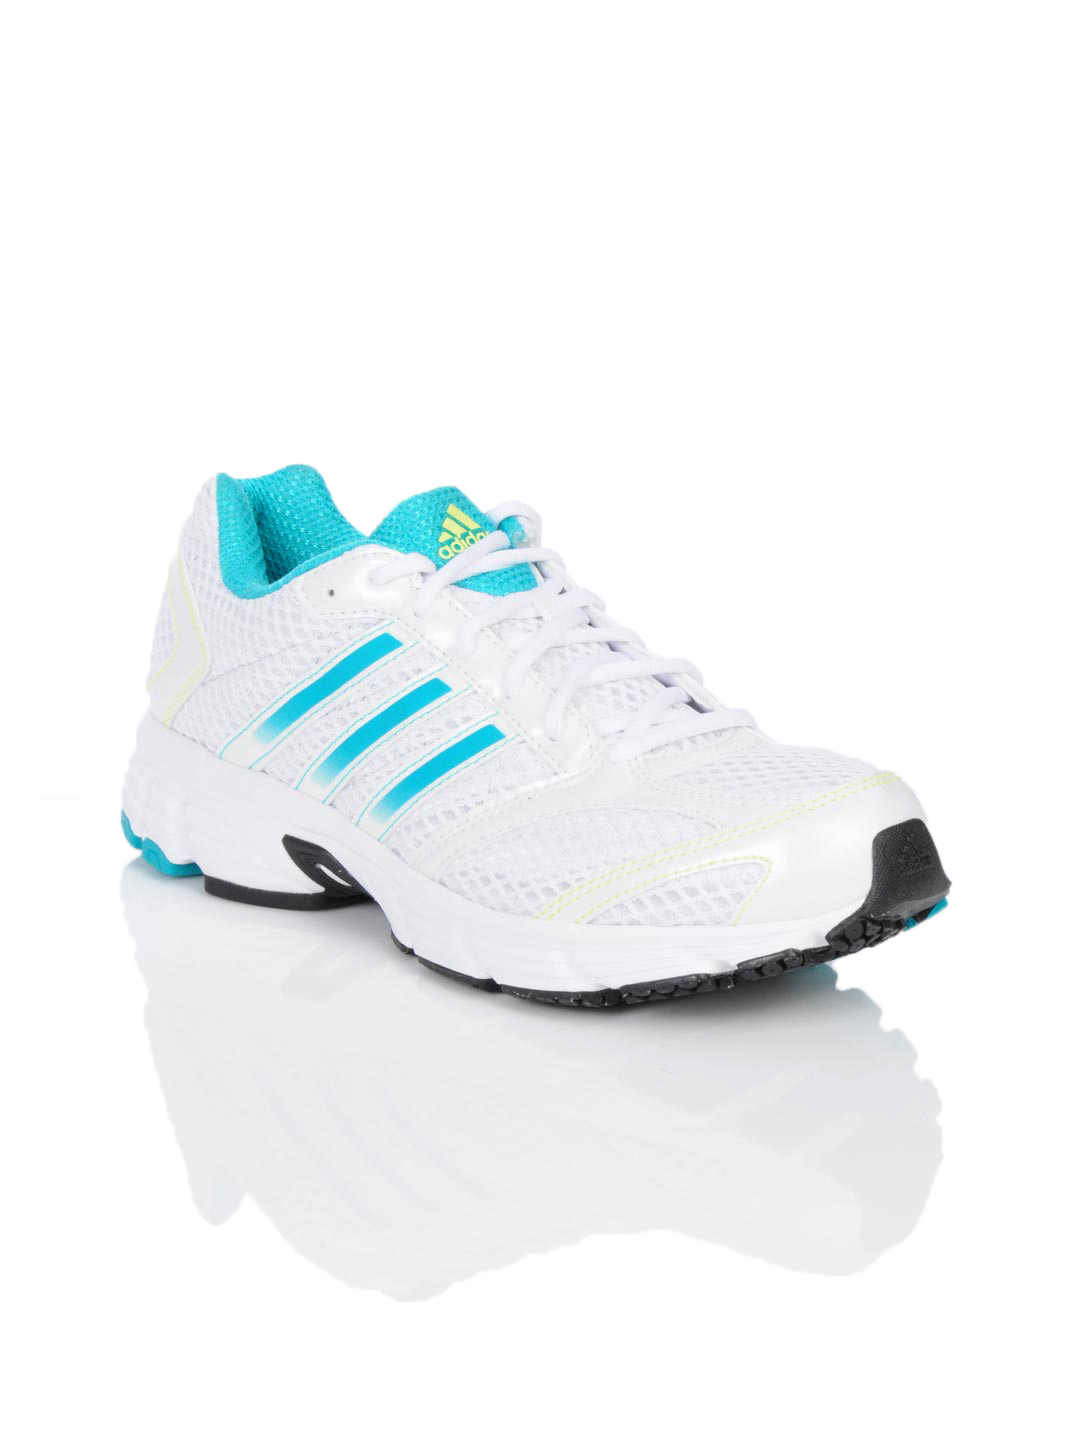 Adidas Women Vanquish 5 W White Sports Shoes